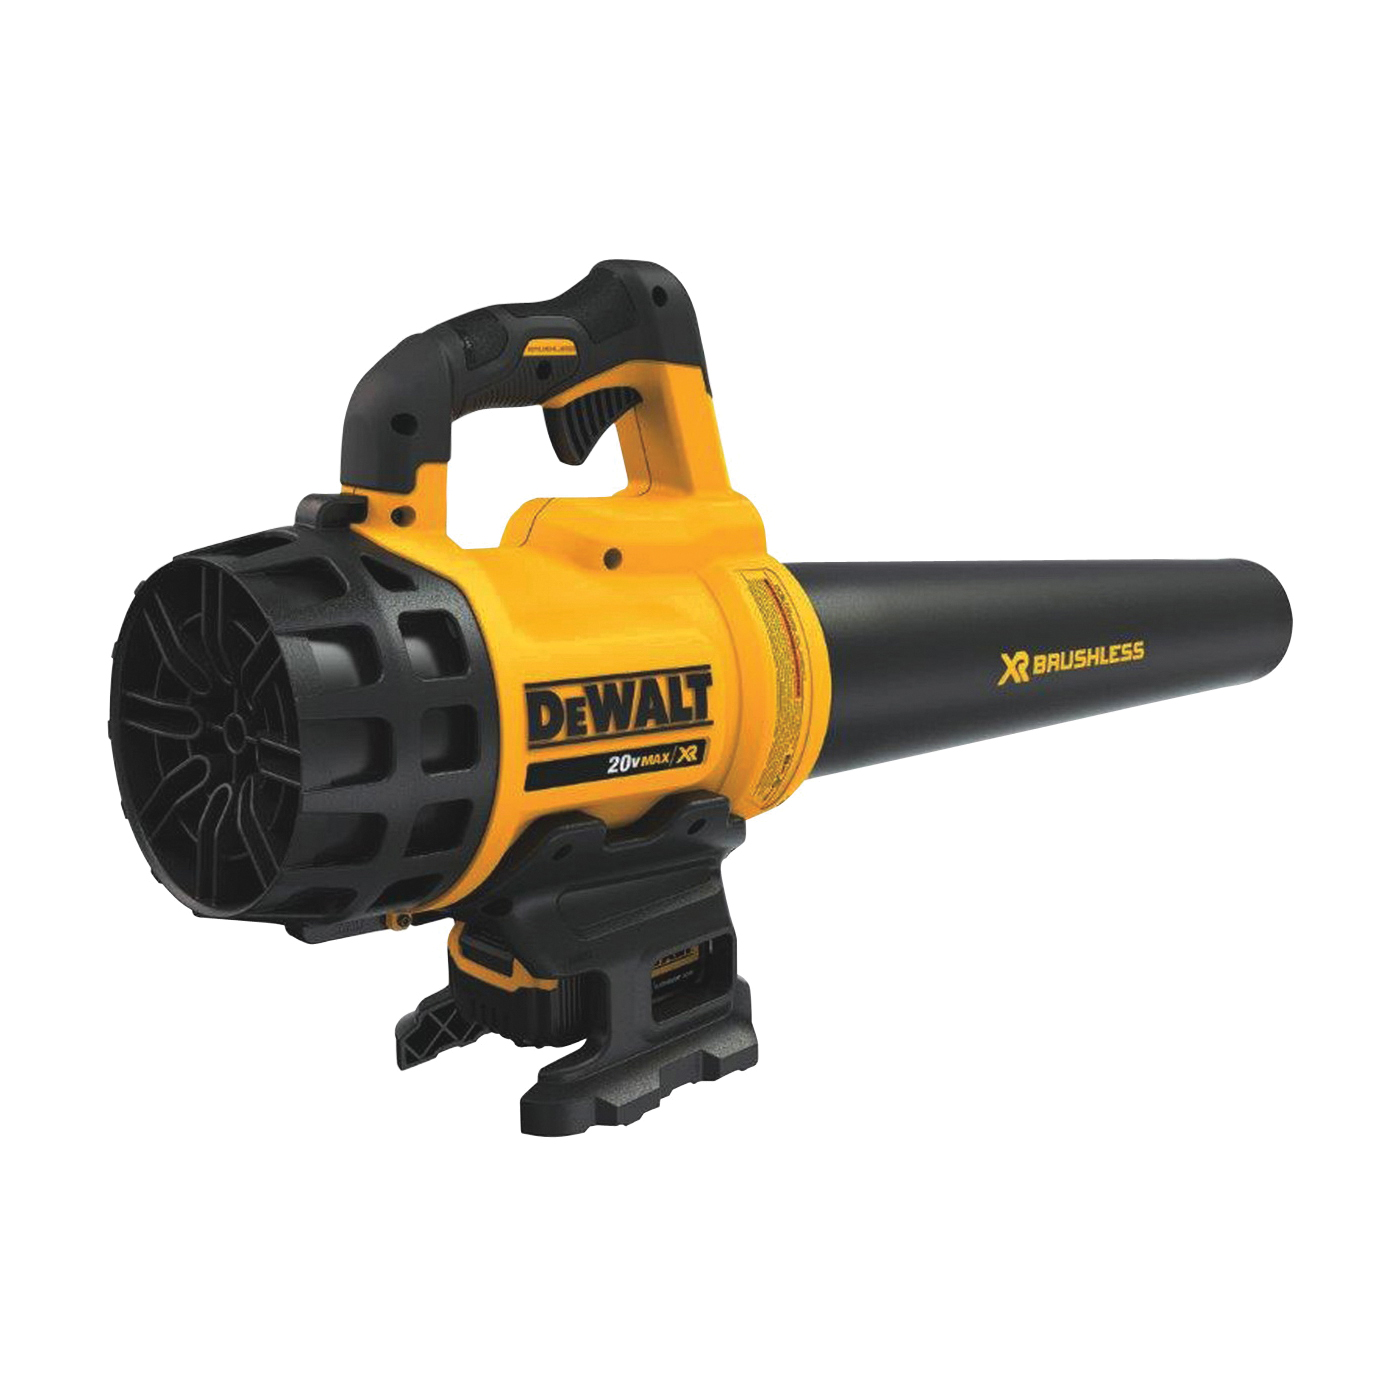 Picture of Black+Decker DCBL720P1 Brushless Handheld Blower, 5 Ah, 20 V Battery, Lithium-Ion Battery, 400 cfm Air